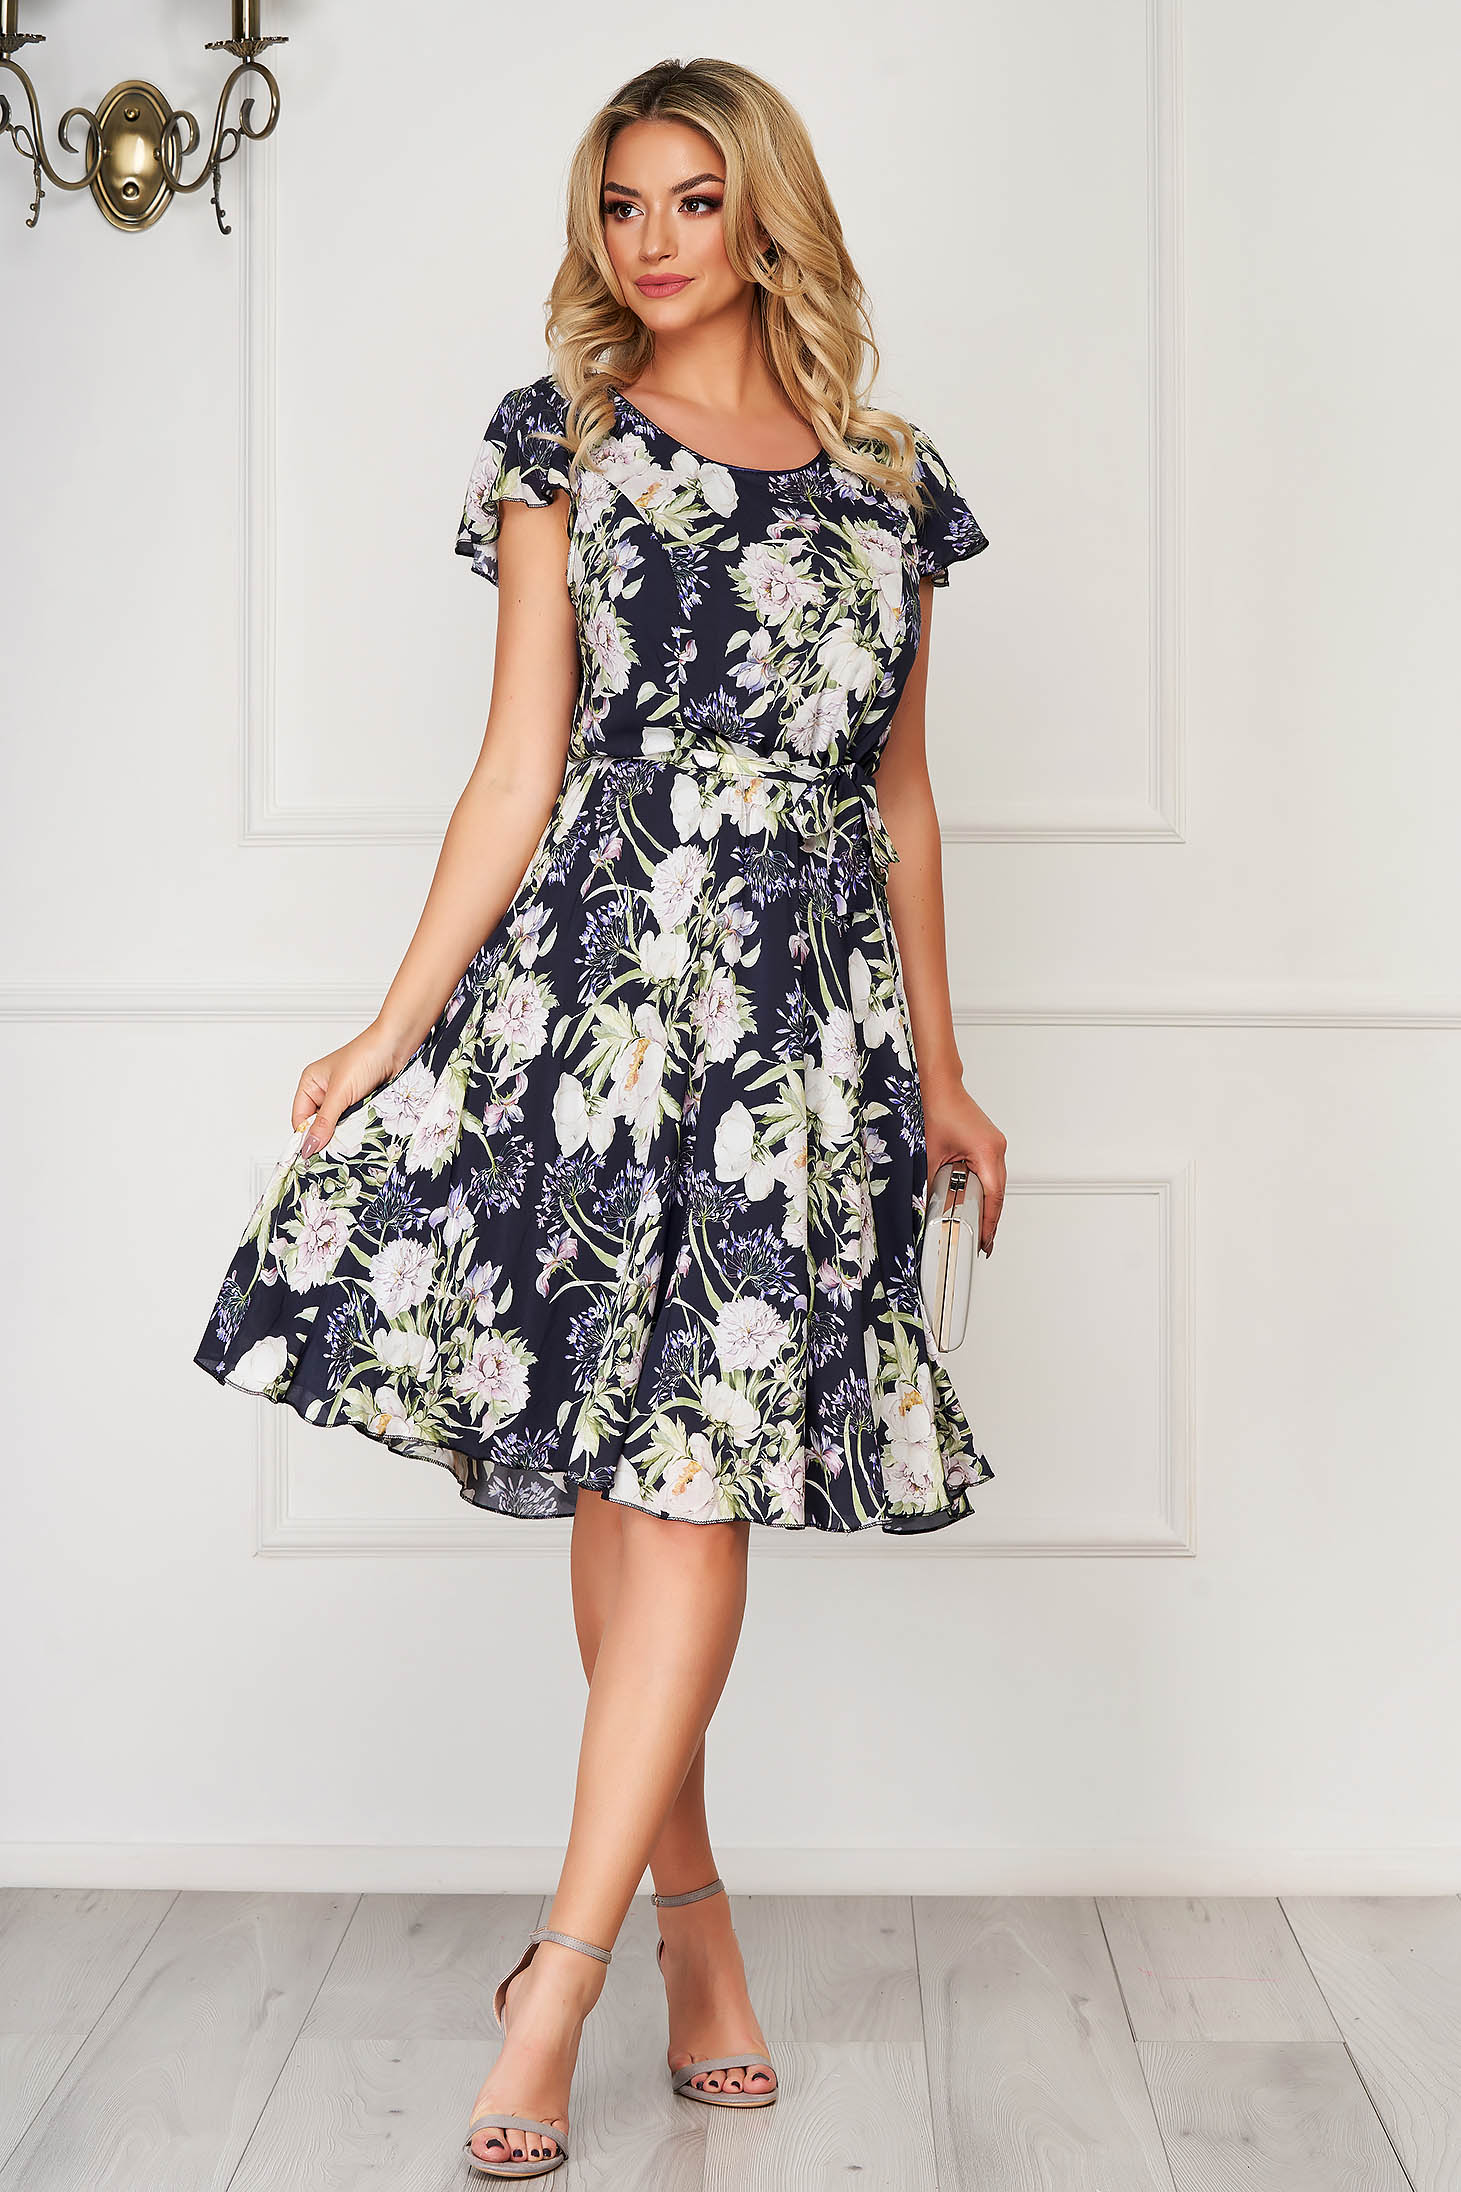 Darkblue dress elegant daily midi cloche thin fabric with floral print accessorized with tied waistband